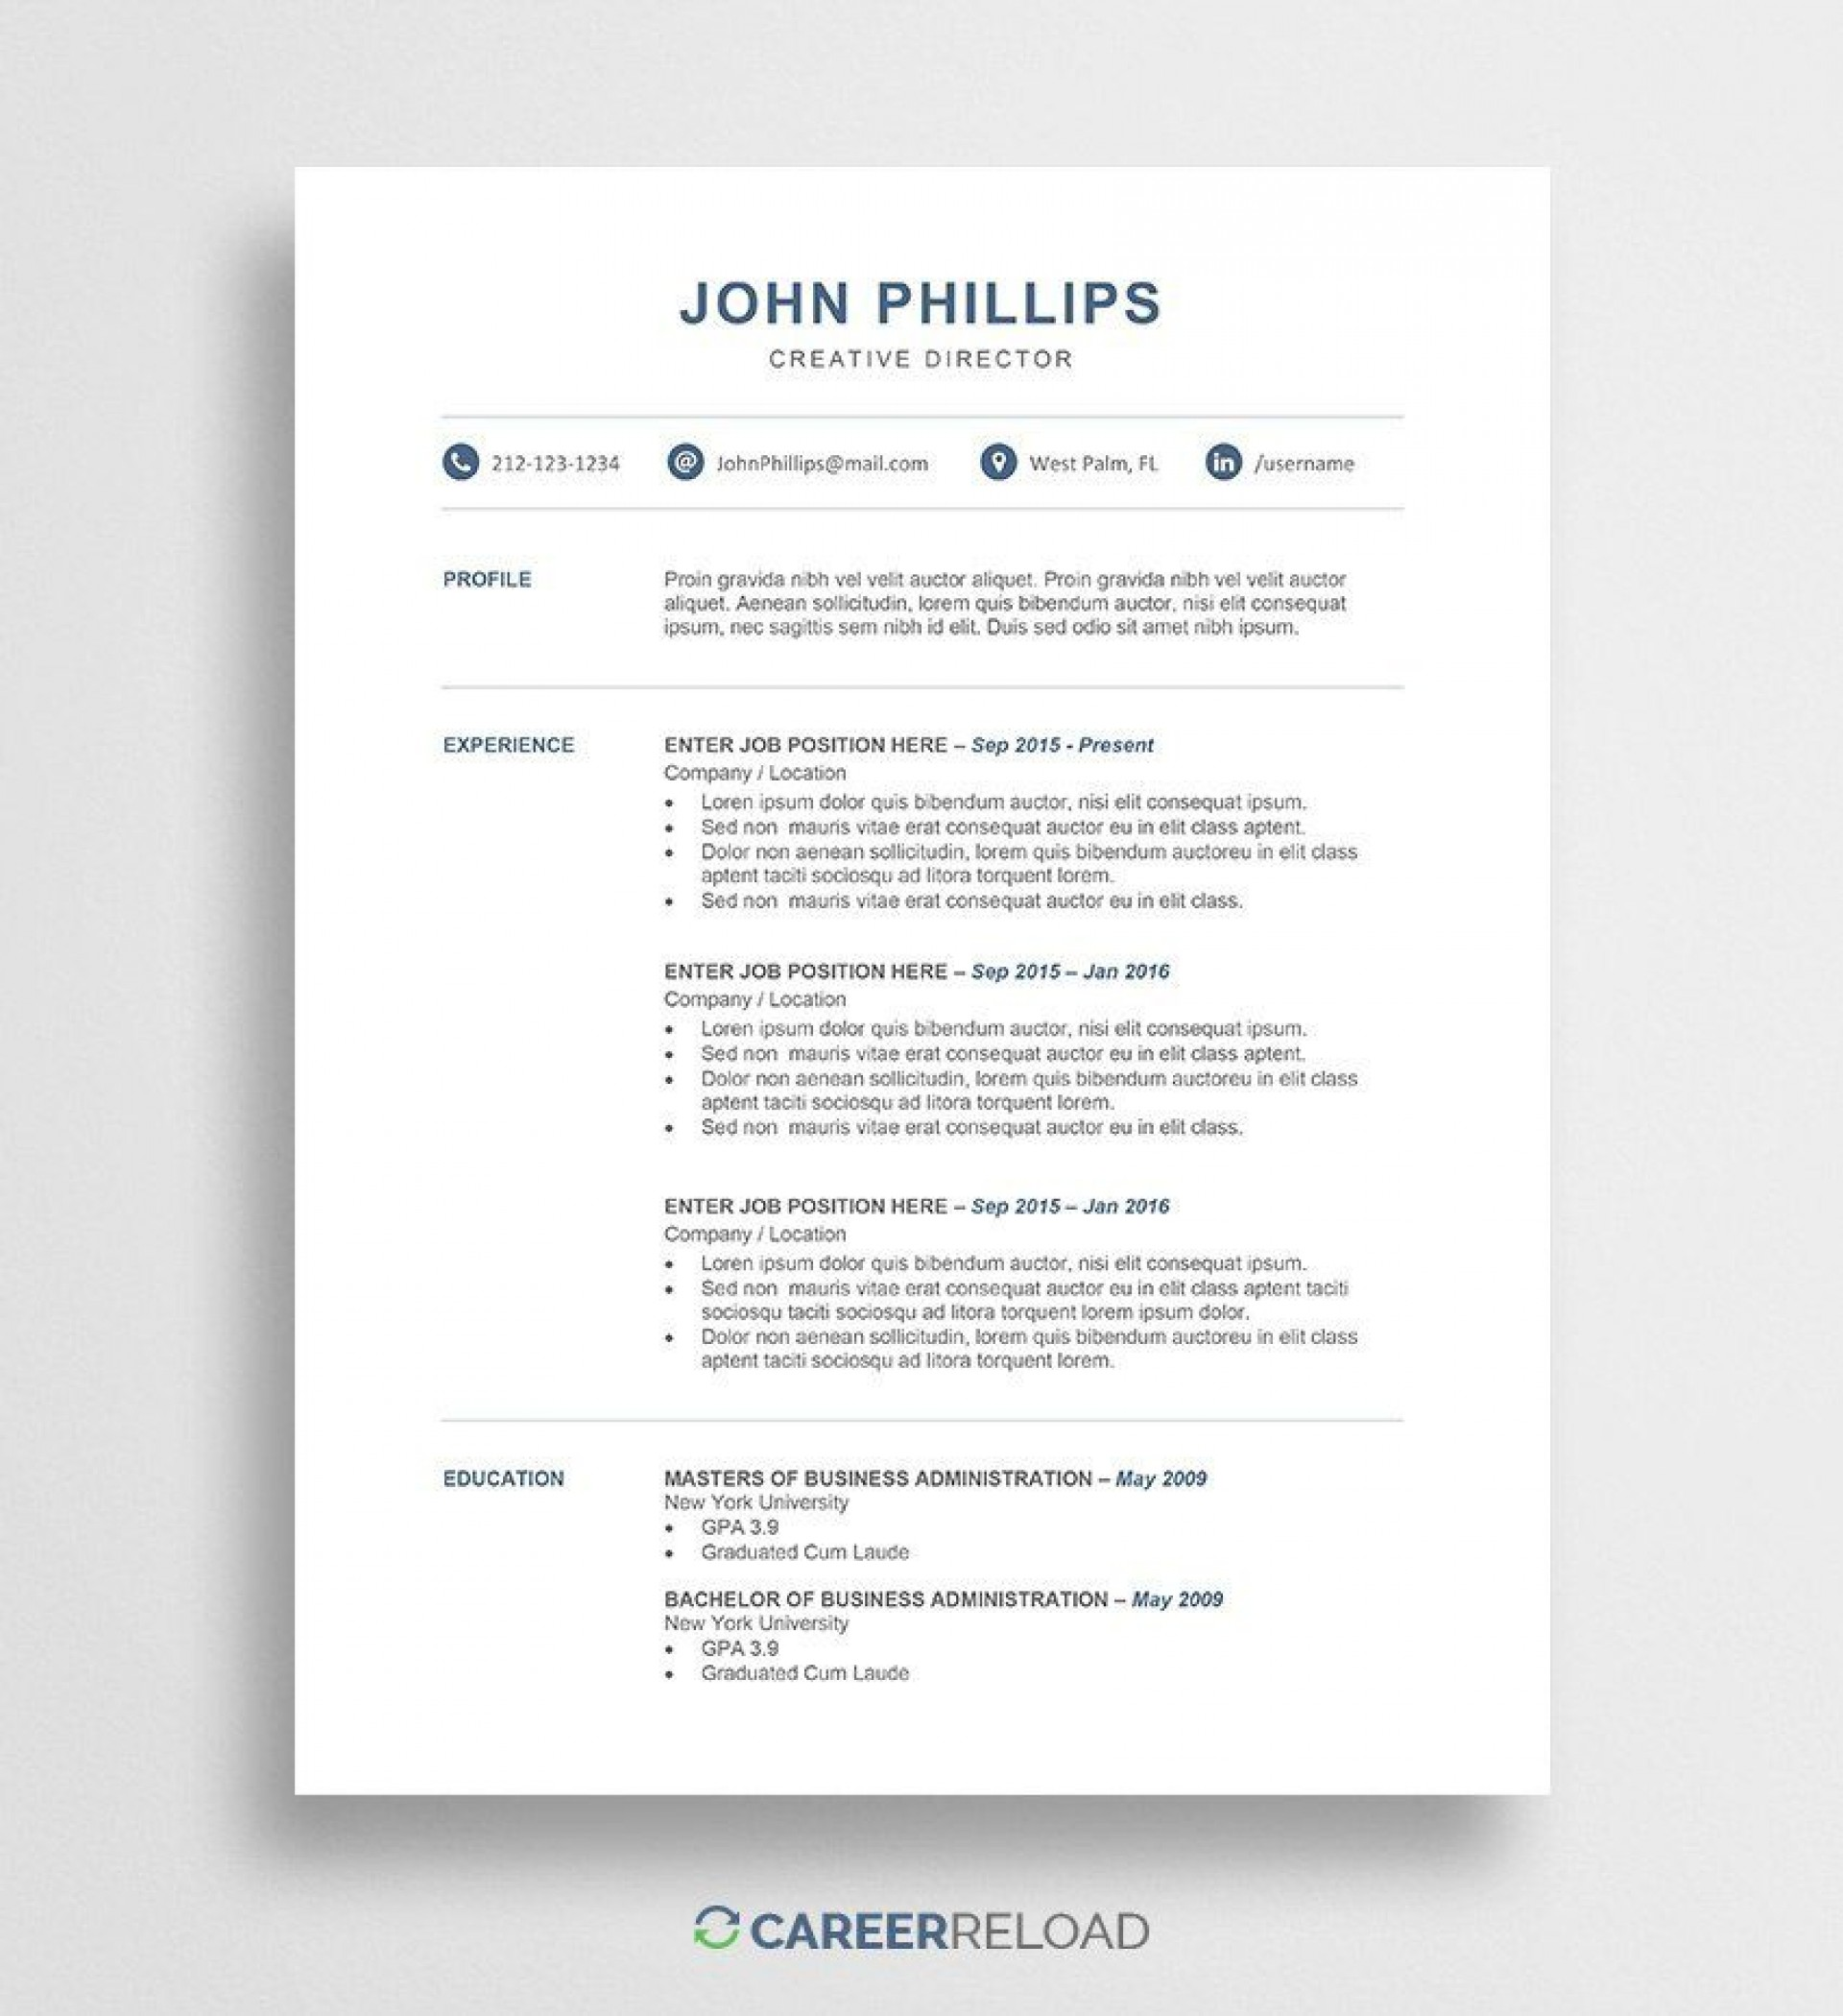 002 Dreaded Word Resume Template Free Image  Microsoft 2010 Download 2019 Modern1920